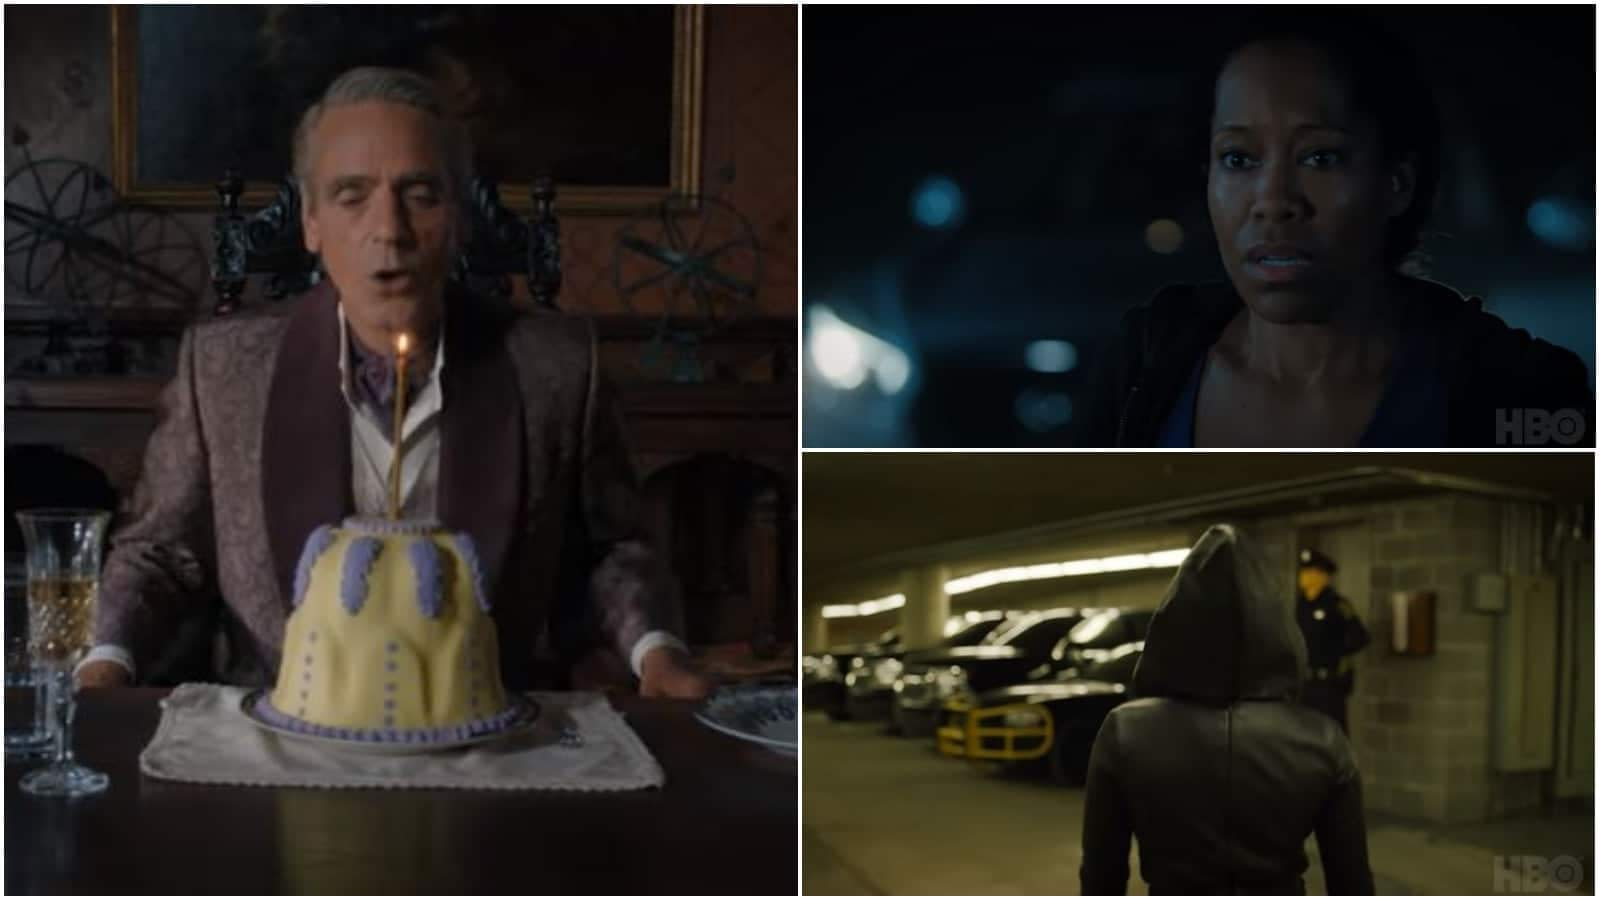 'Watchmen': Jeremy Irons Blows Out Candle on Interesting Cake, Regina King Looks Concerned, and More [VIDEO]